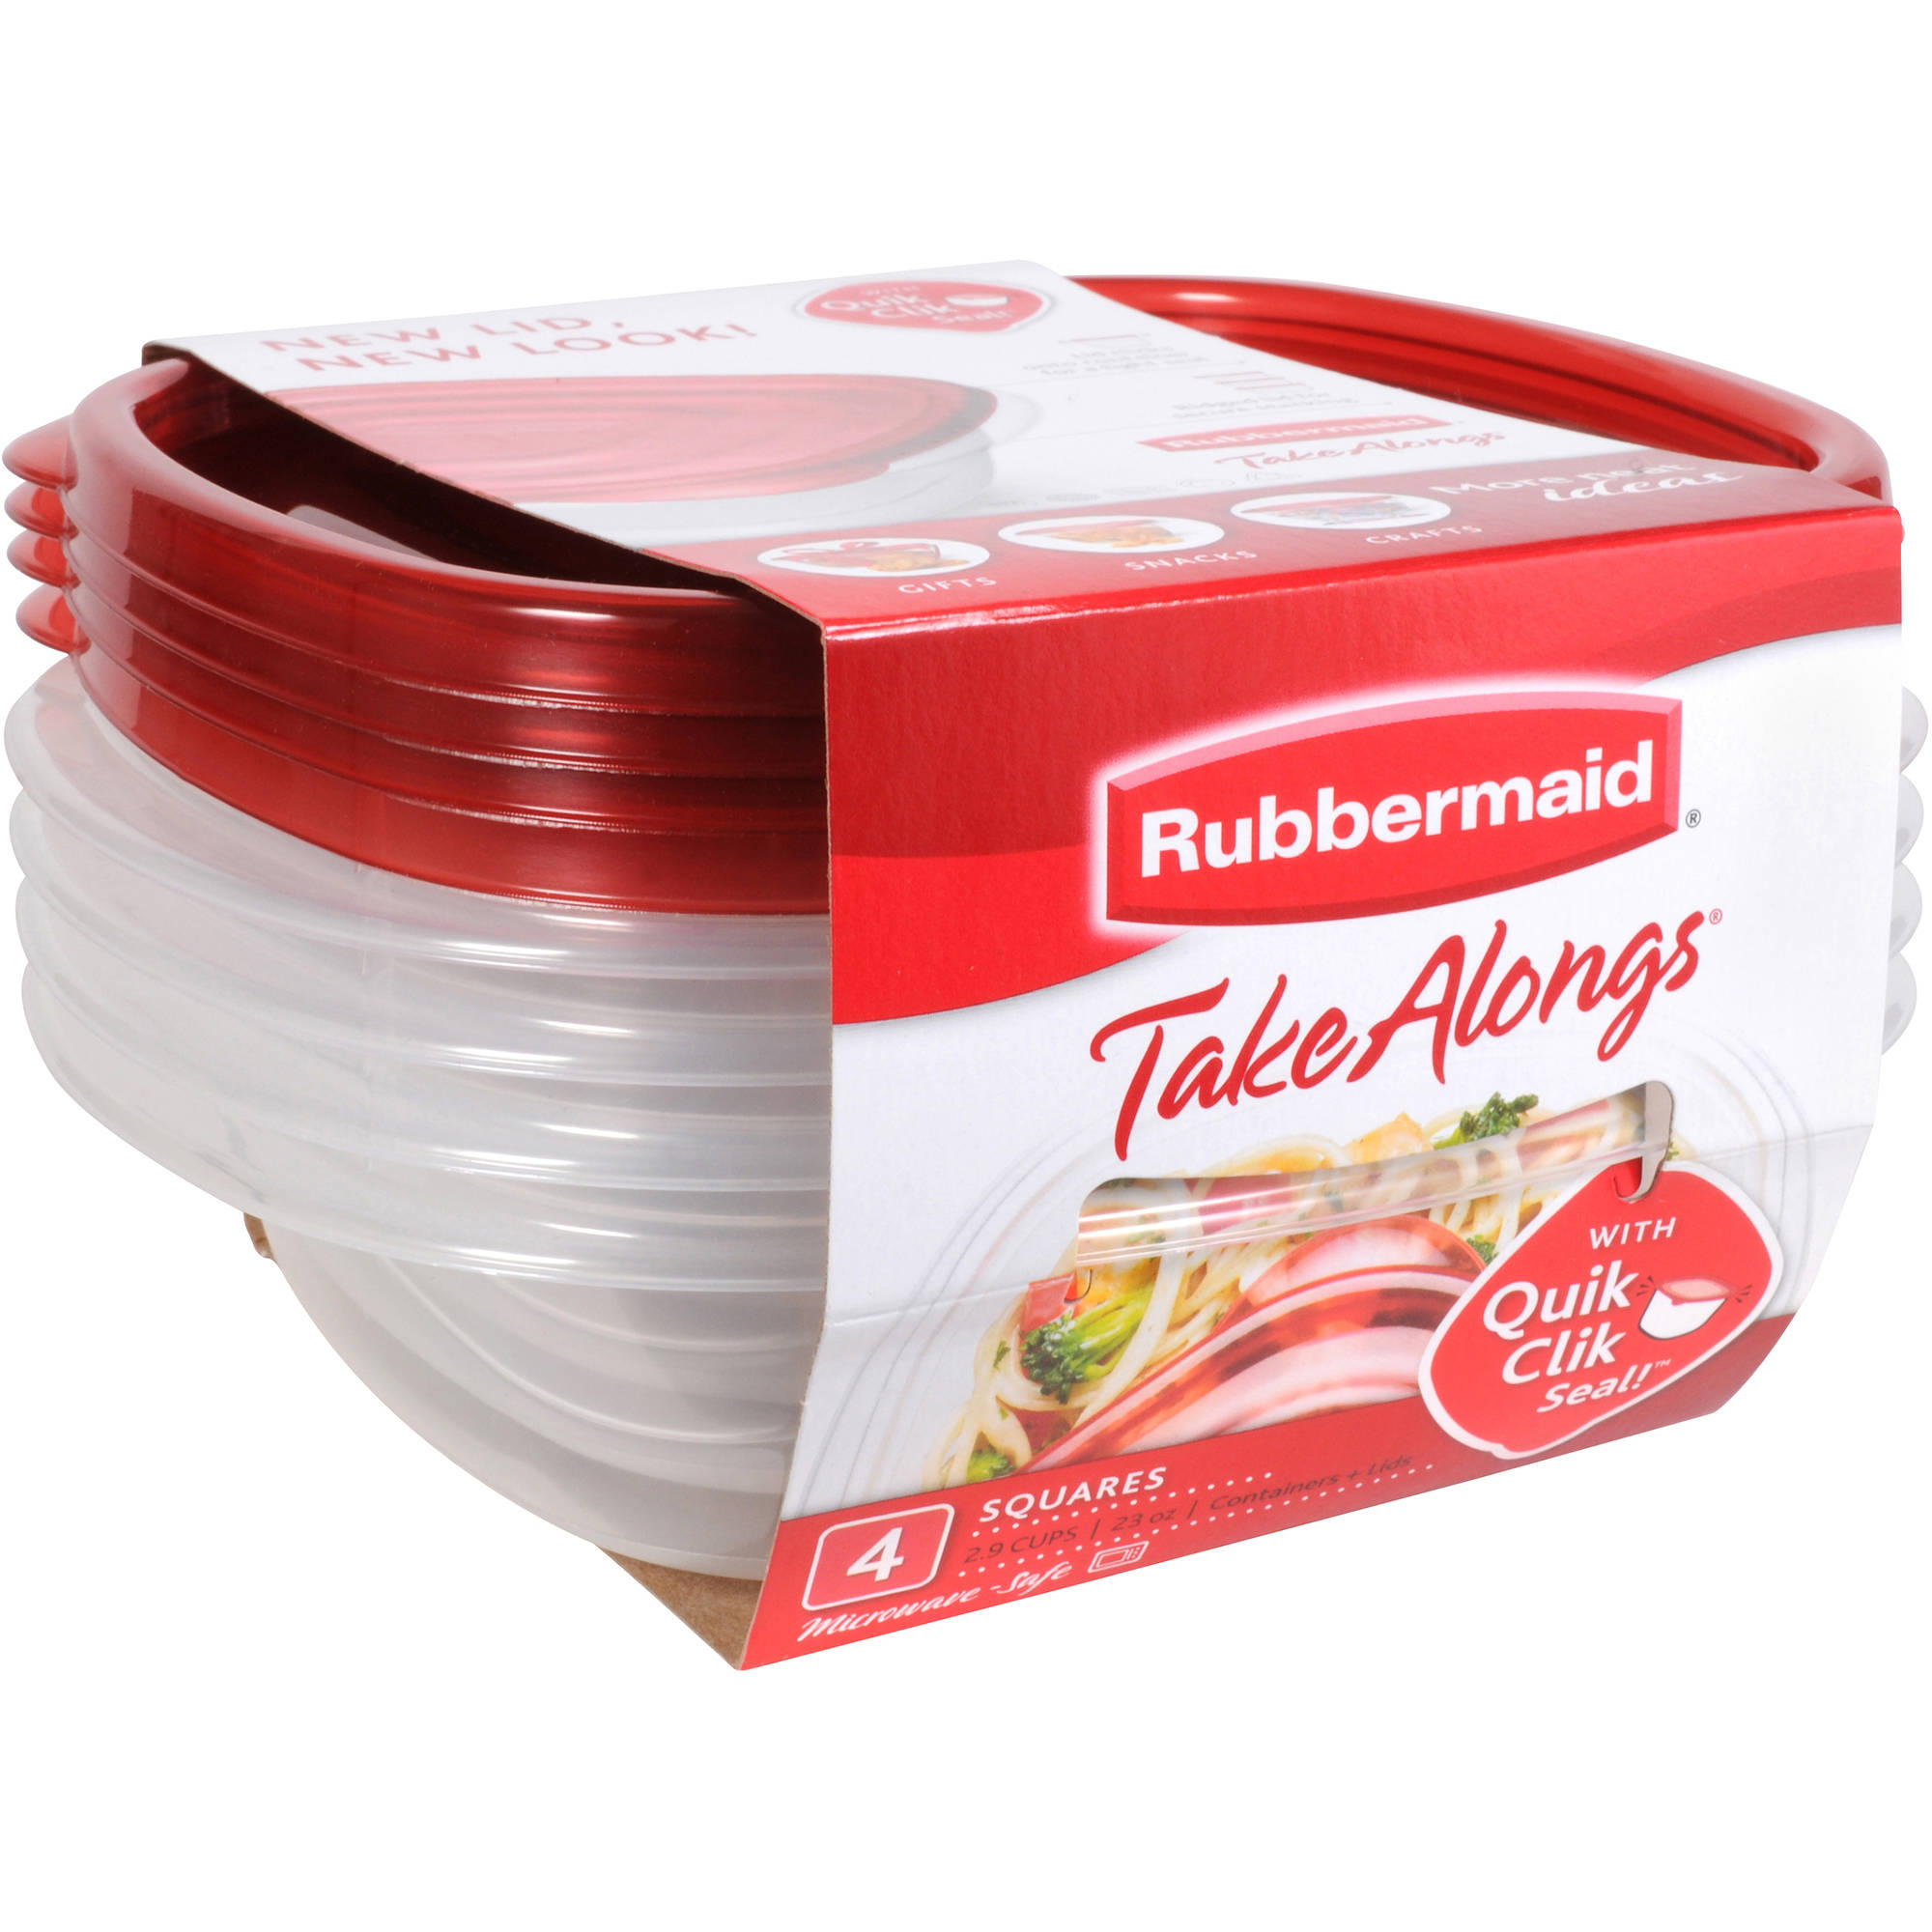 Rubbermaid TakeAlongs Squares Containers, 4 count